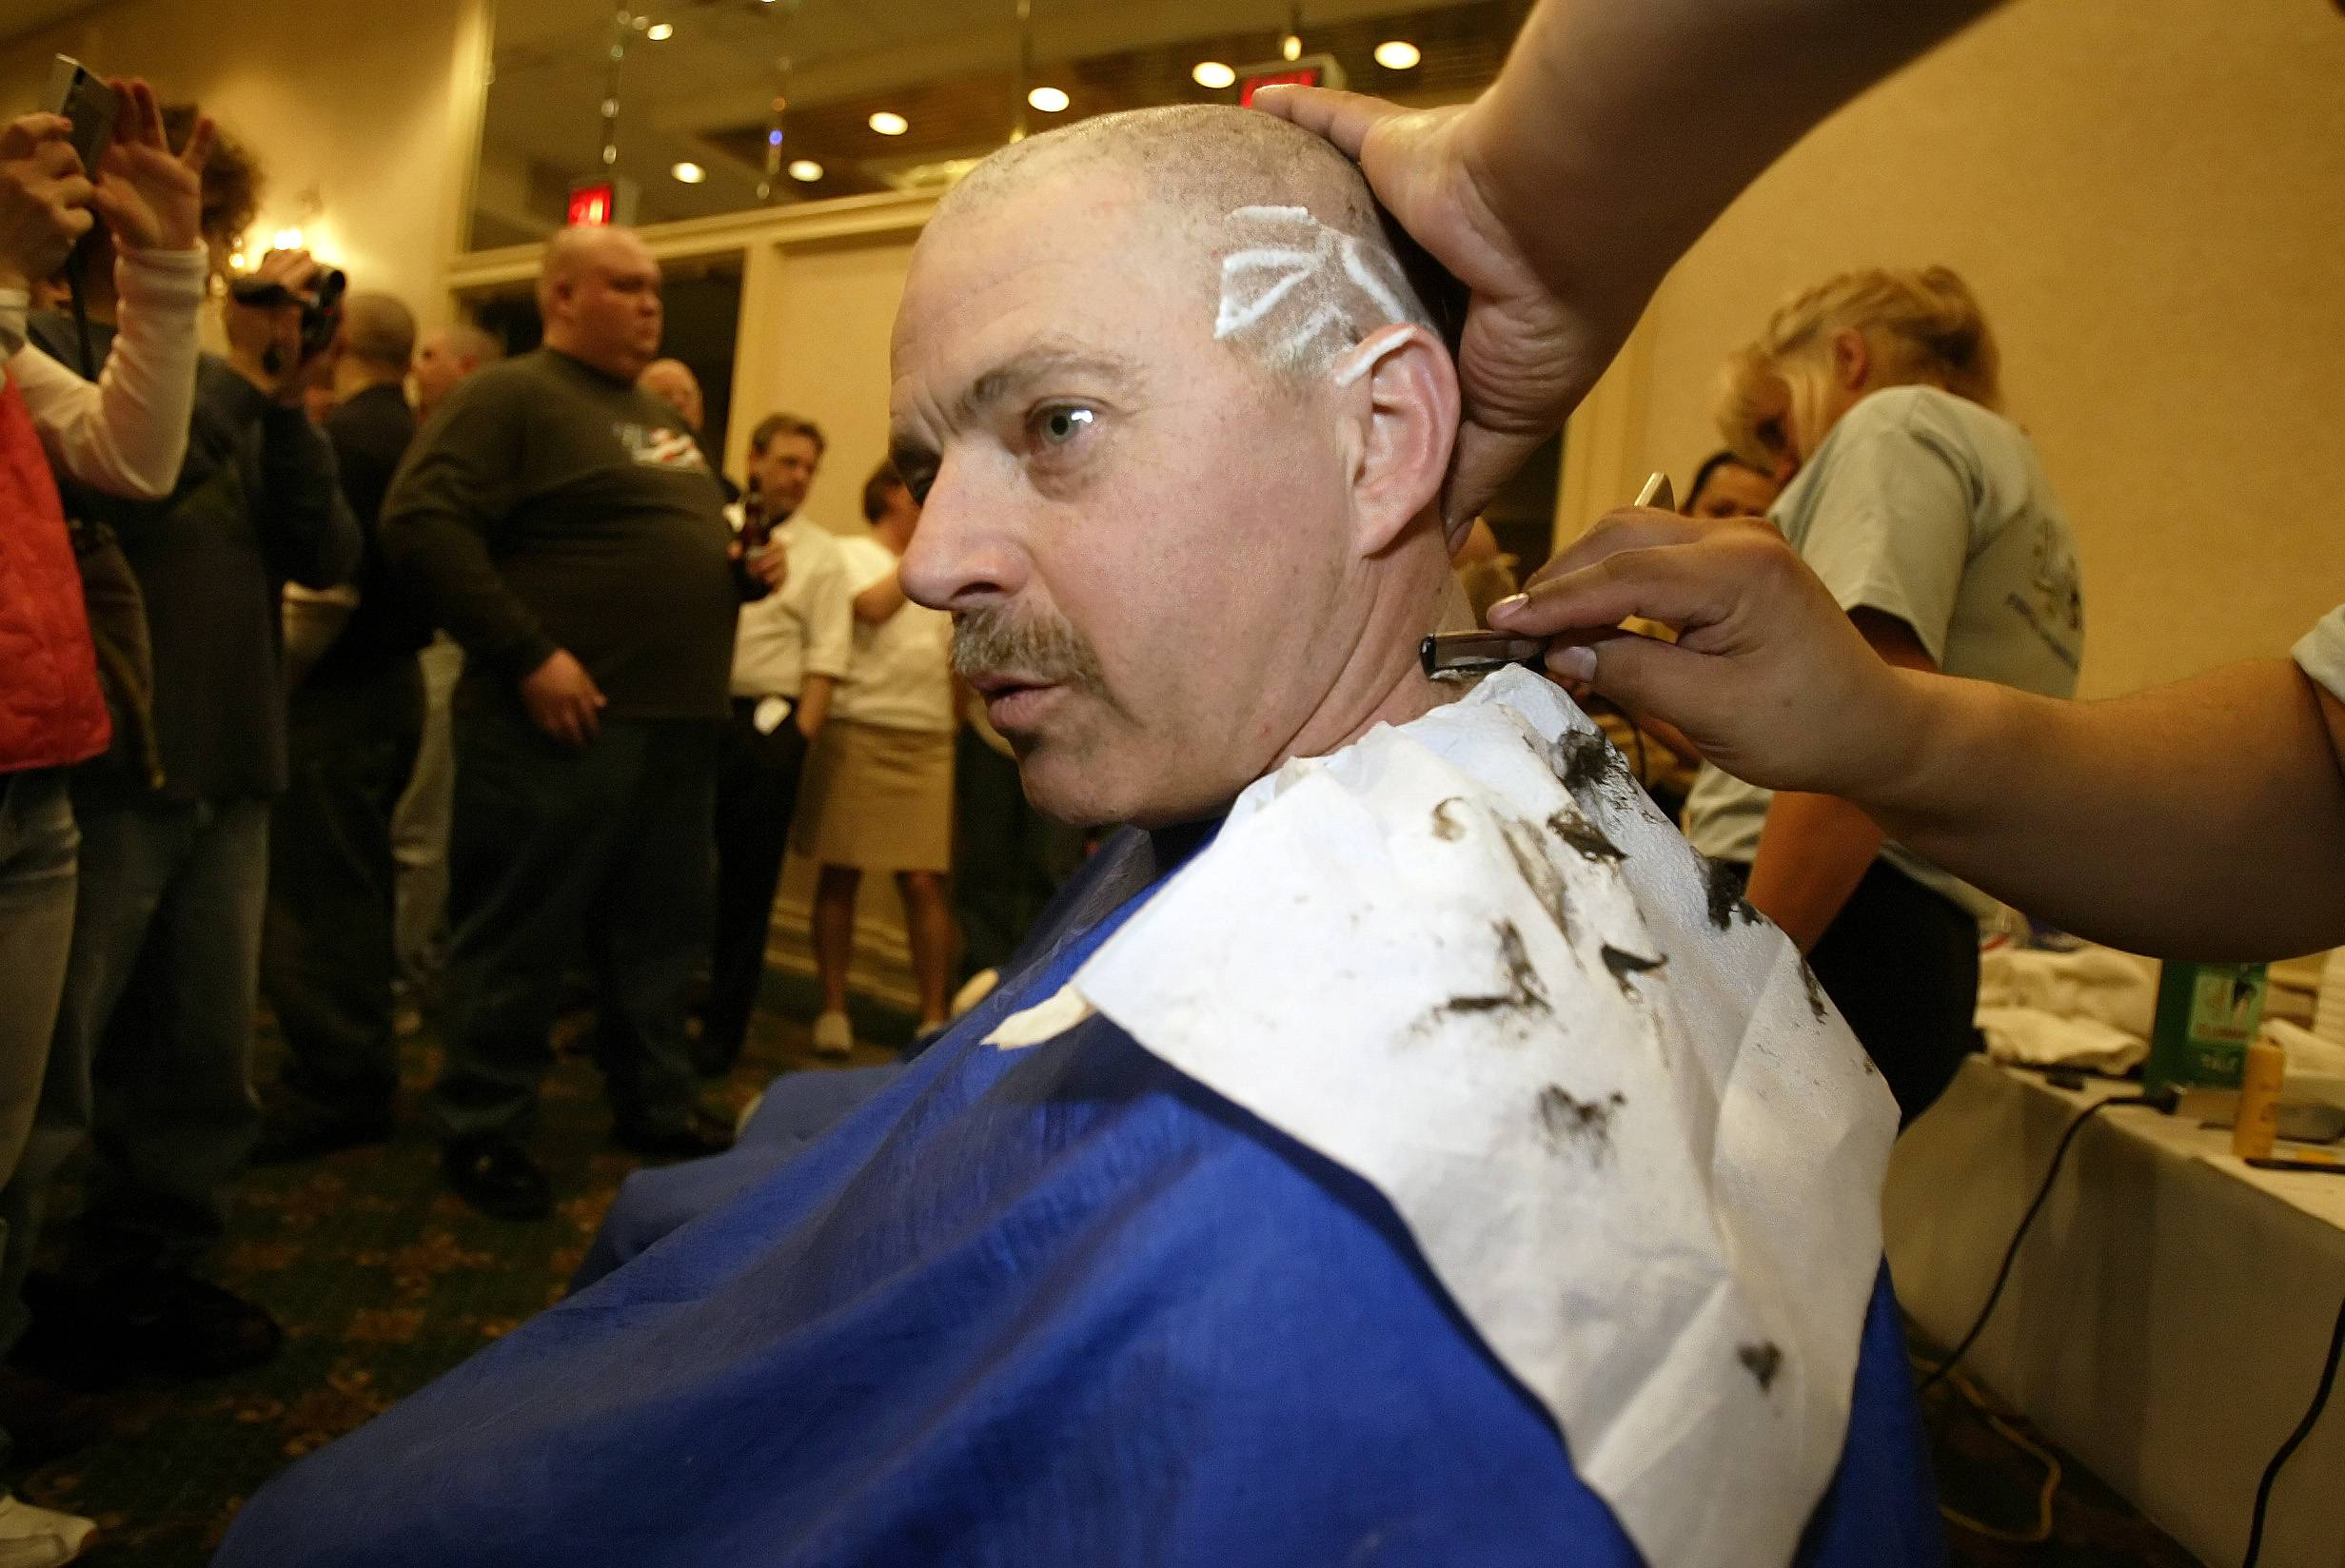 Naperville's St. Baldrick's event to shave heads for solidarity